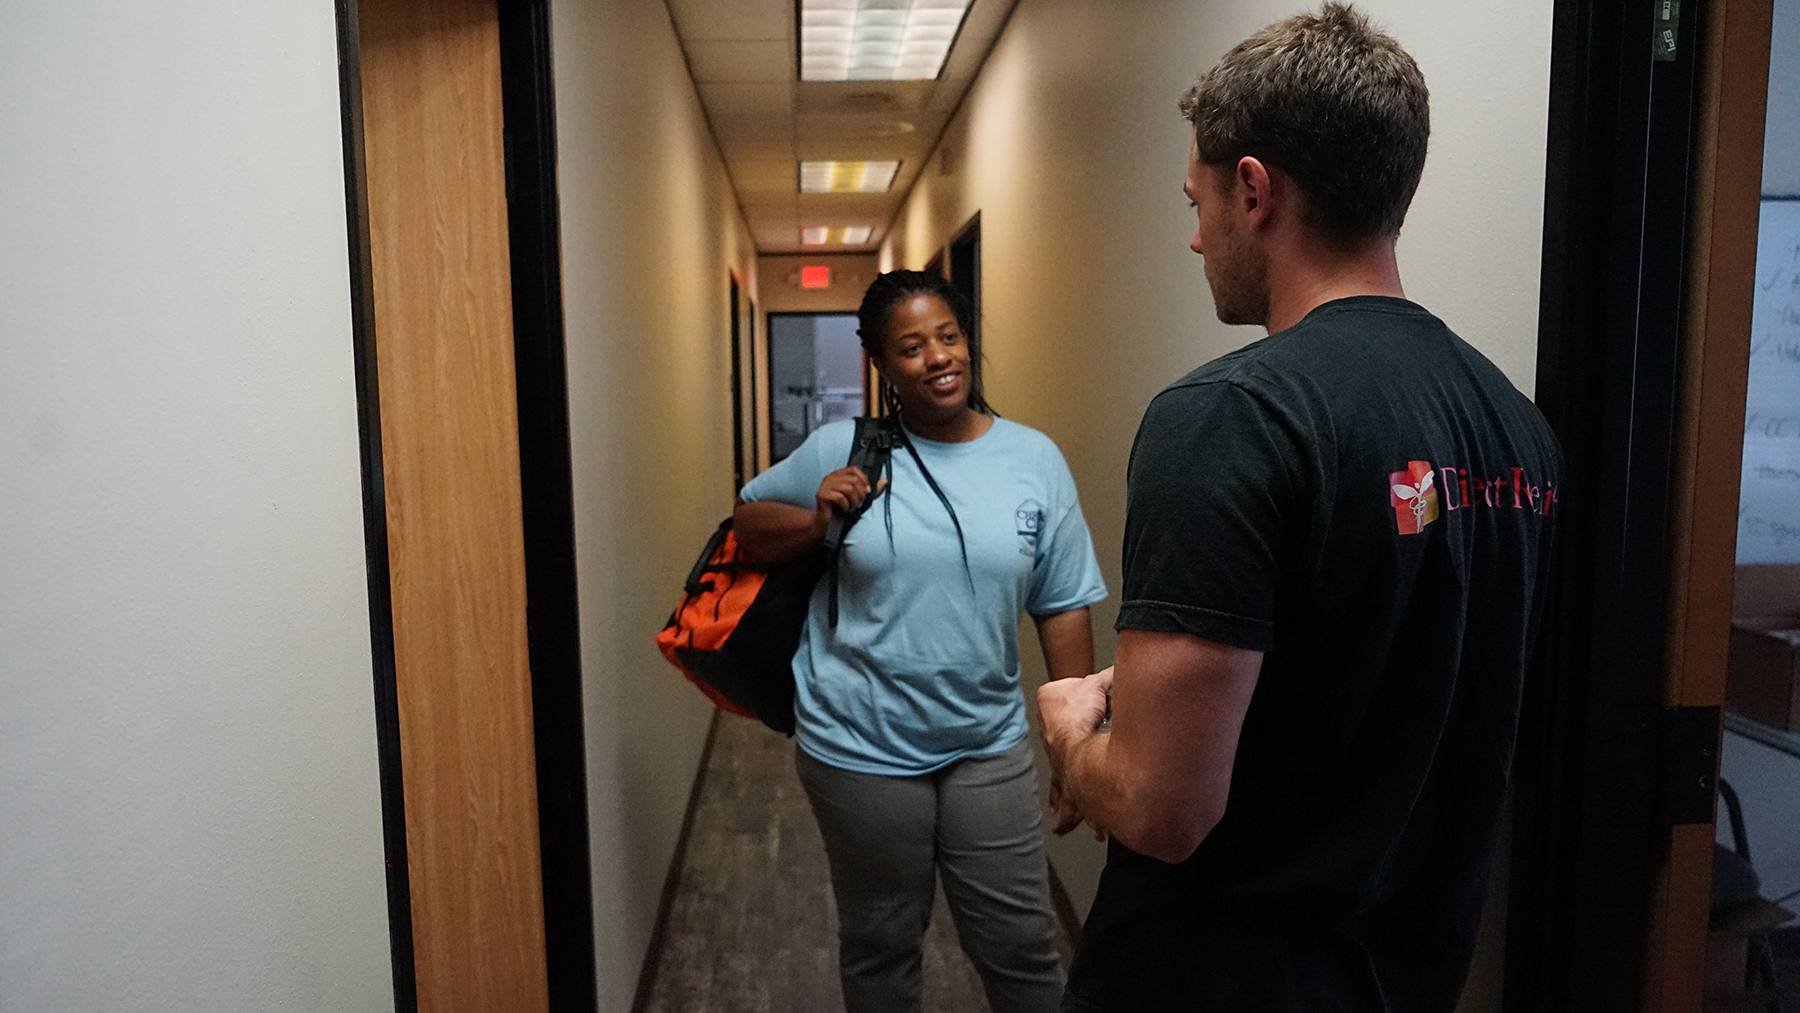 Direct Relief staff deliver emergency medical aid to staff at Christ Clinic in Katy, Texas, in the days following Hurricane Harvey. Christ Clinic and 10 other free and charitable clinics are the recipients of Hurricane Harvery recovery and resiliency funds from Direct Relief. (Photos by Tony Morain/Direct Relief)